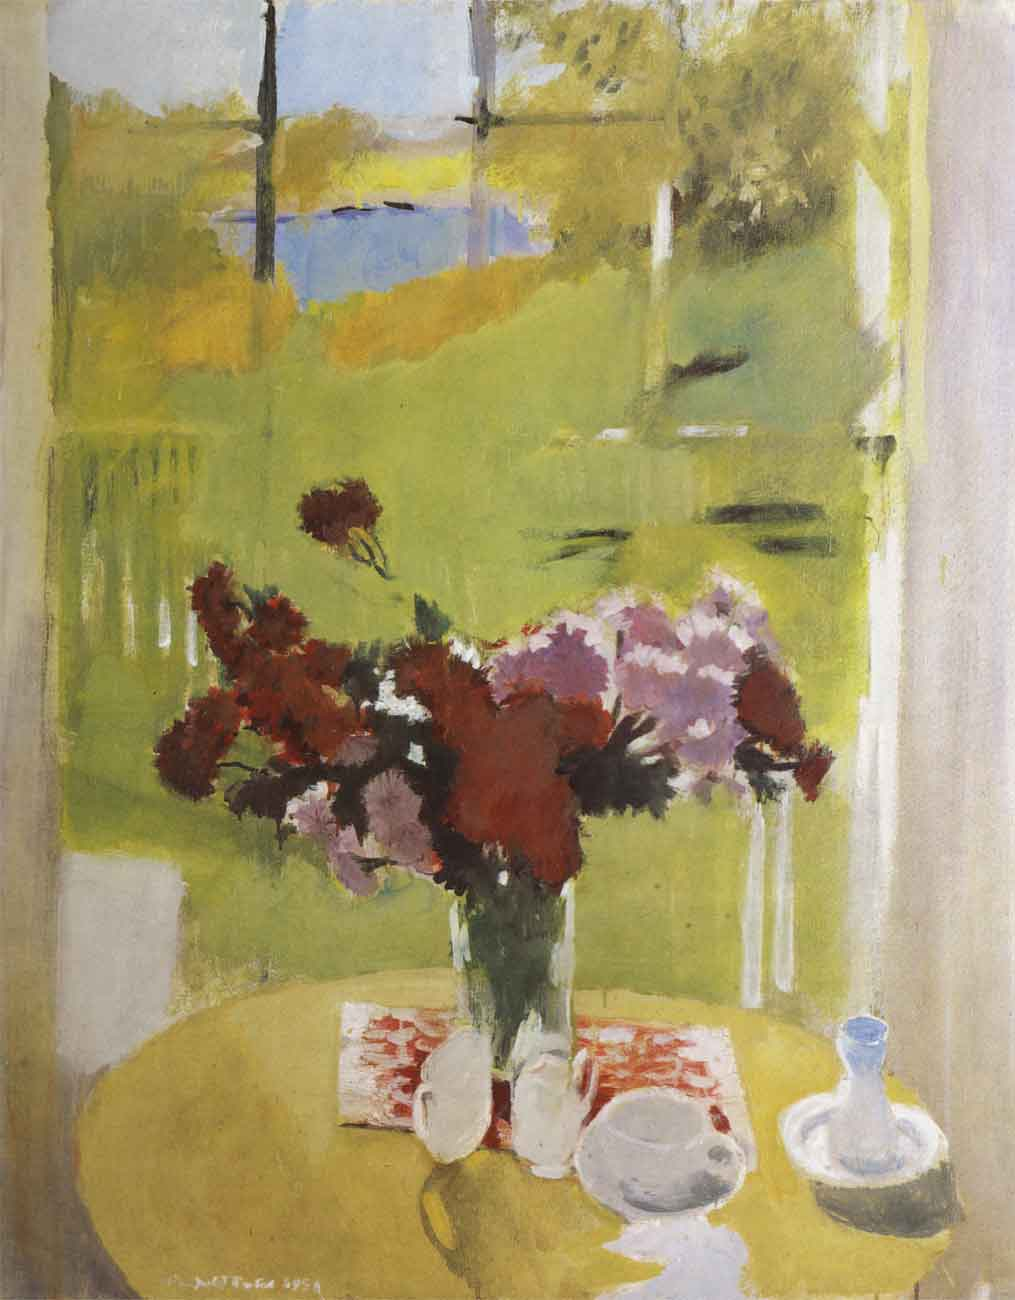 fairfield porter  u2013  u0026quot mystery that is essential to reality u0026quot